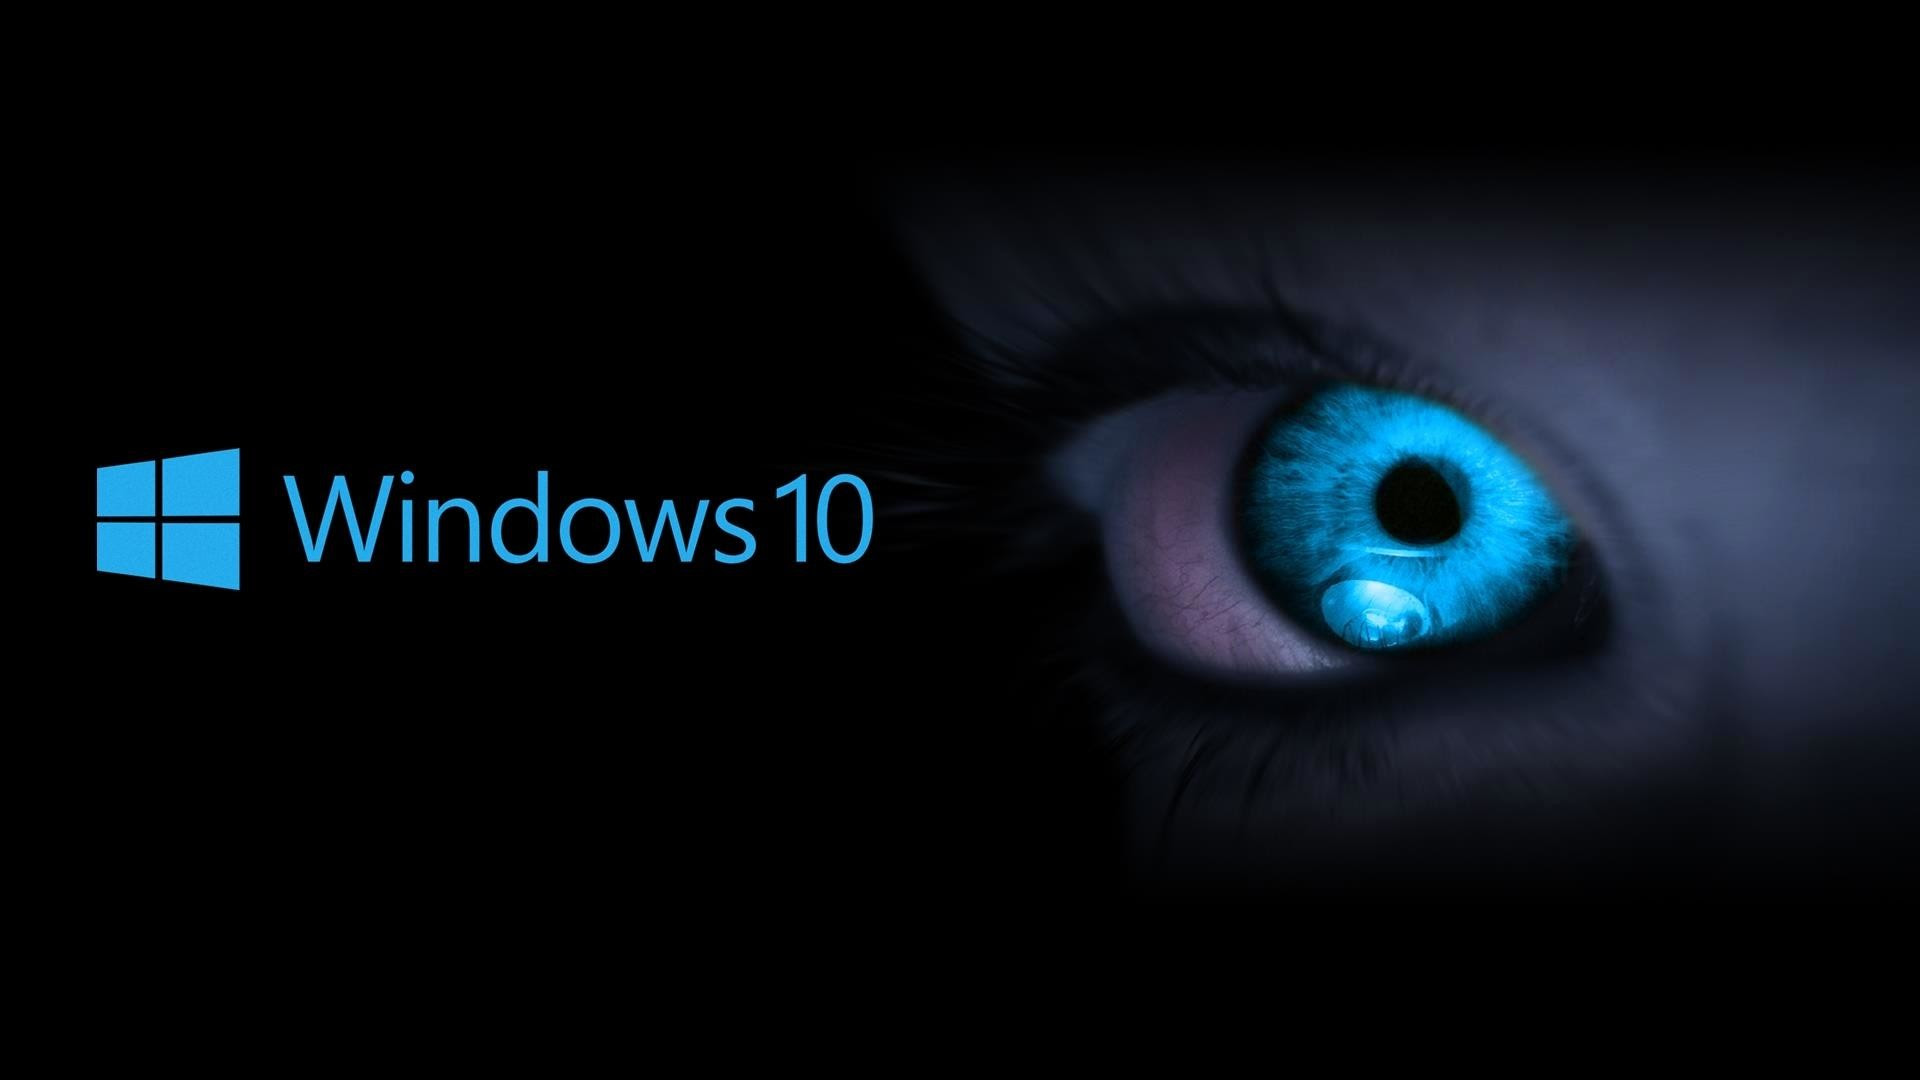 Unduh 5000+ Wallpaper Bergerak Untuk Pc Windows 10 HD Gratis